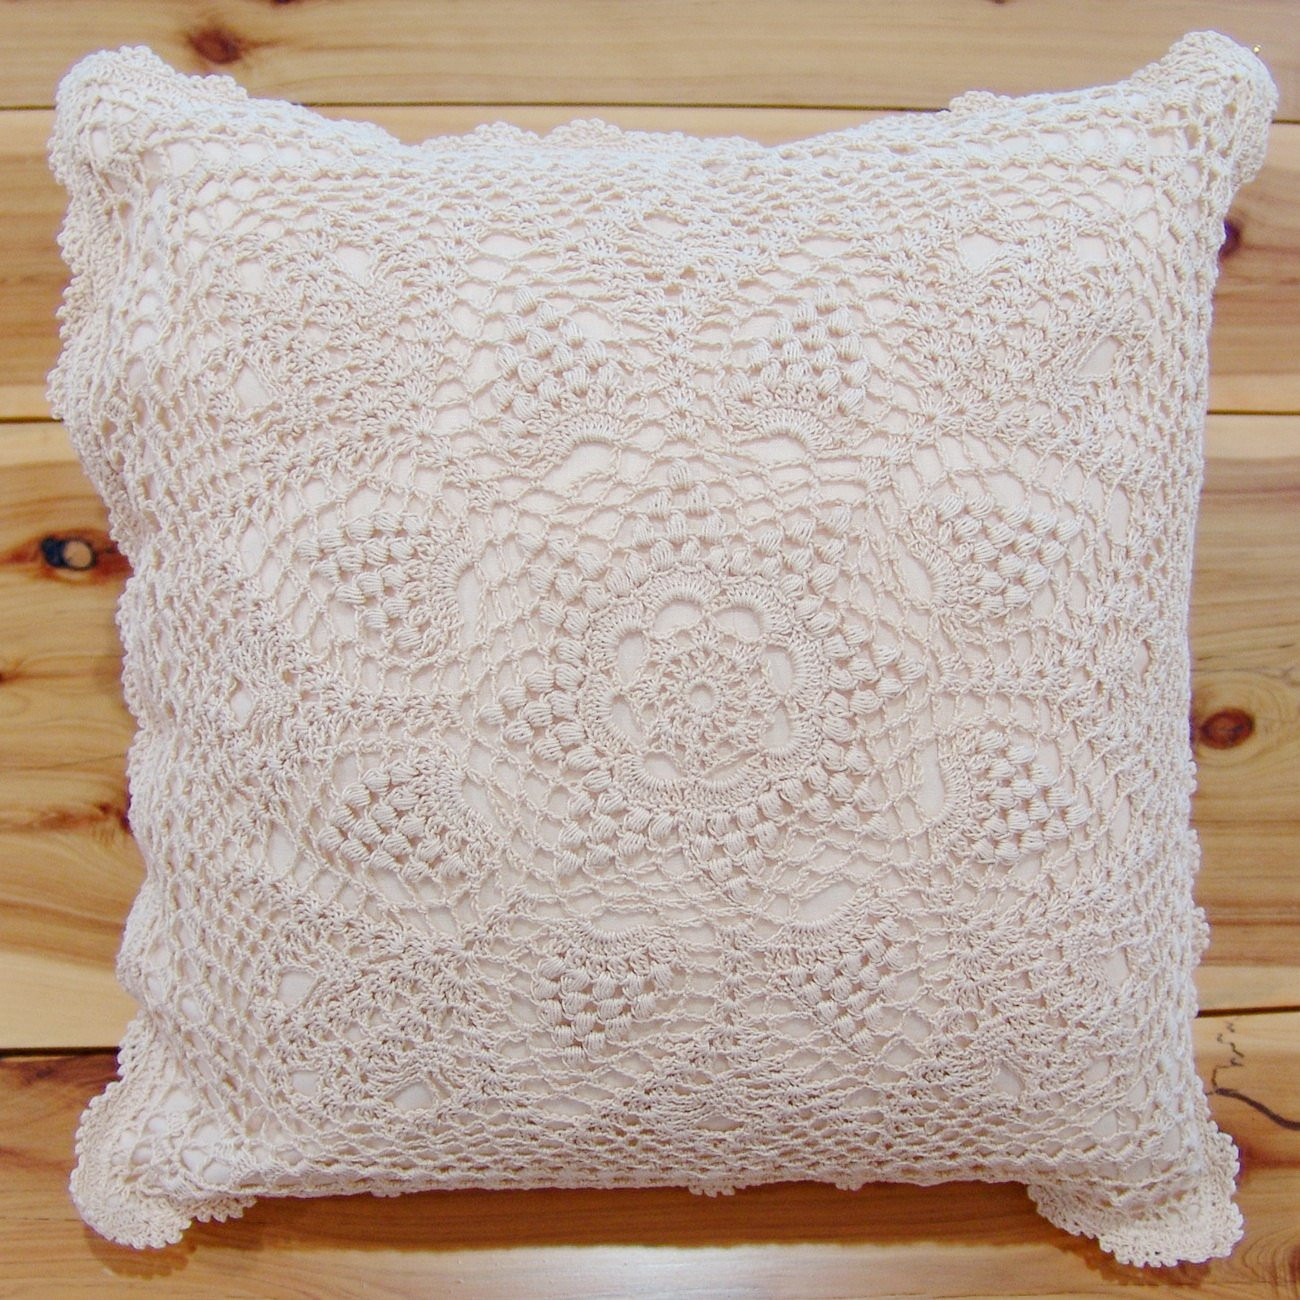 Crochet Pillow Cover Best Of Hand Crochet Lace Cushion Cover Throw Pillow Cover Table Of Amazing 50 Pics Crochet Pillow Cover